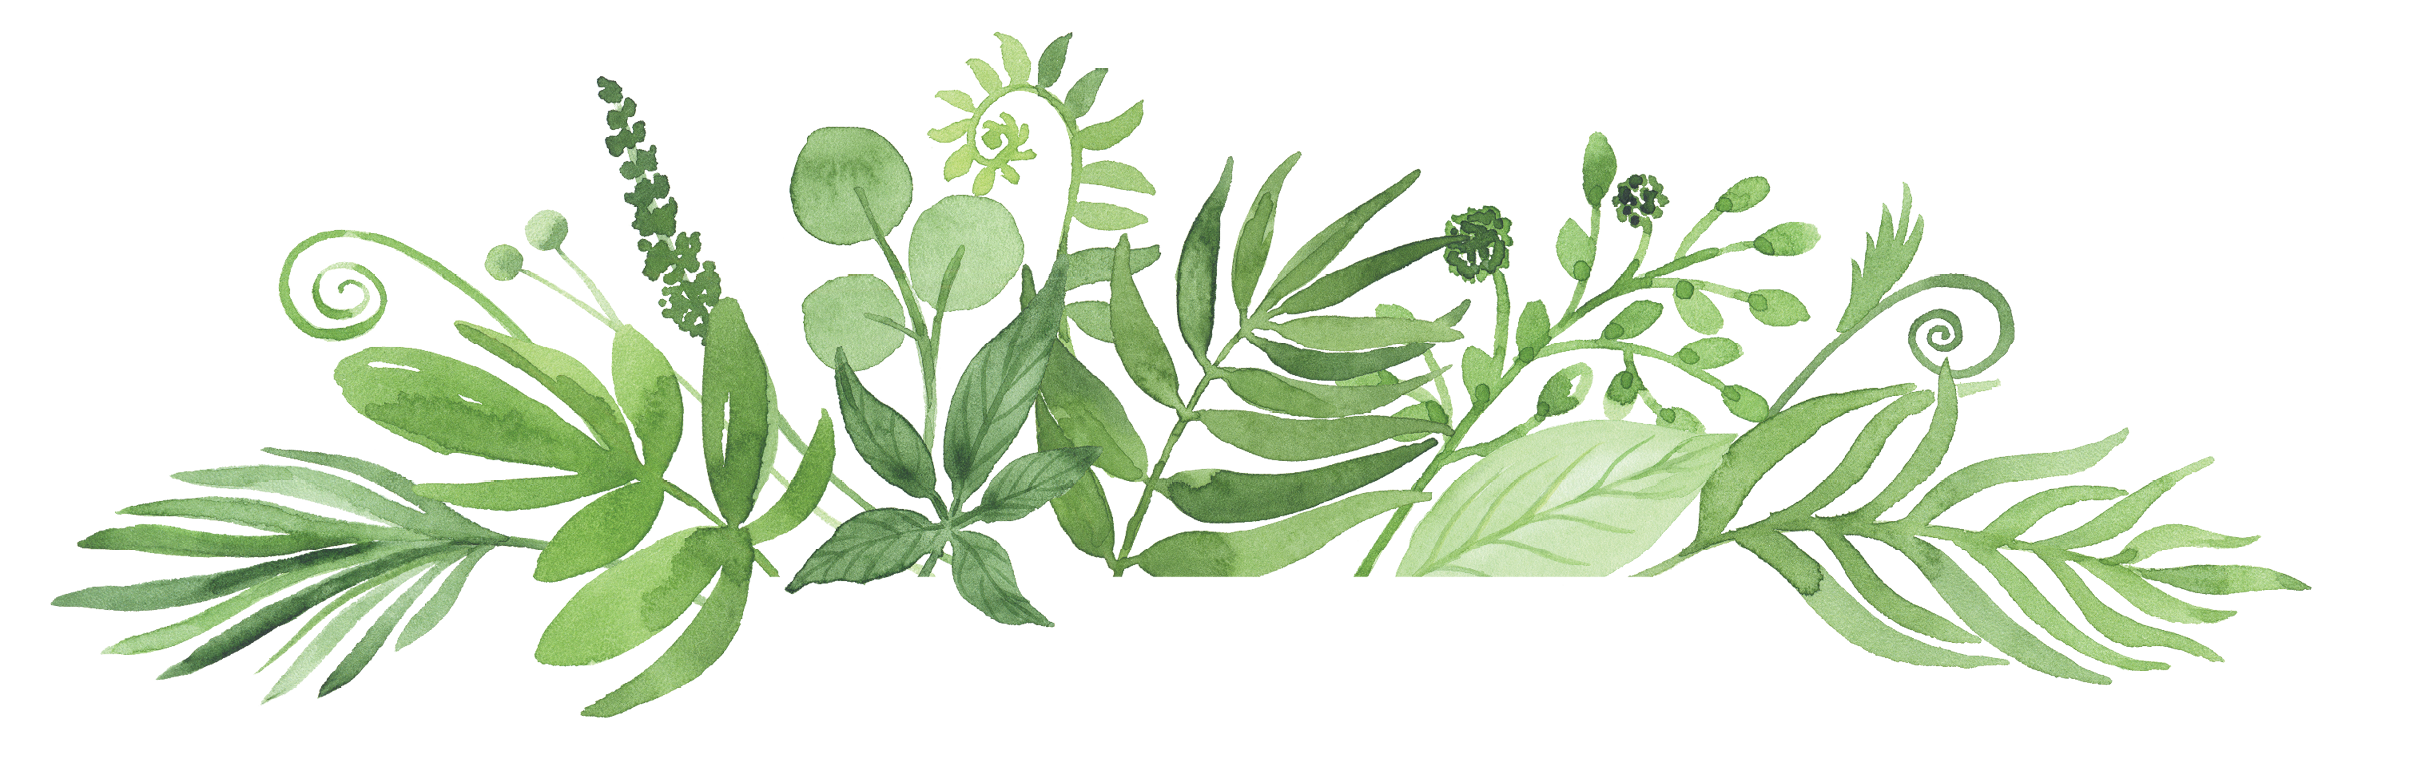 greenery for web.png